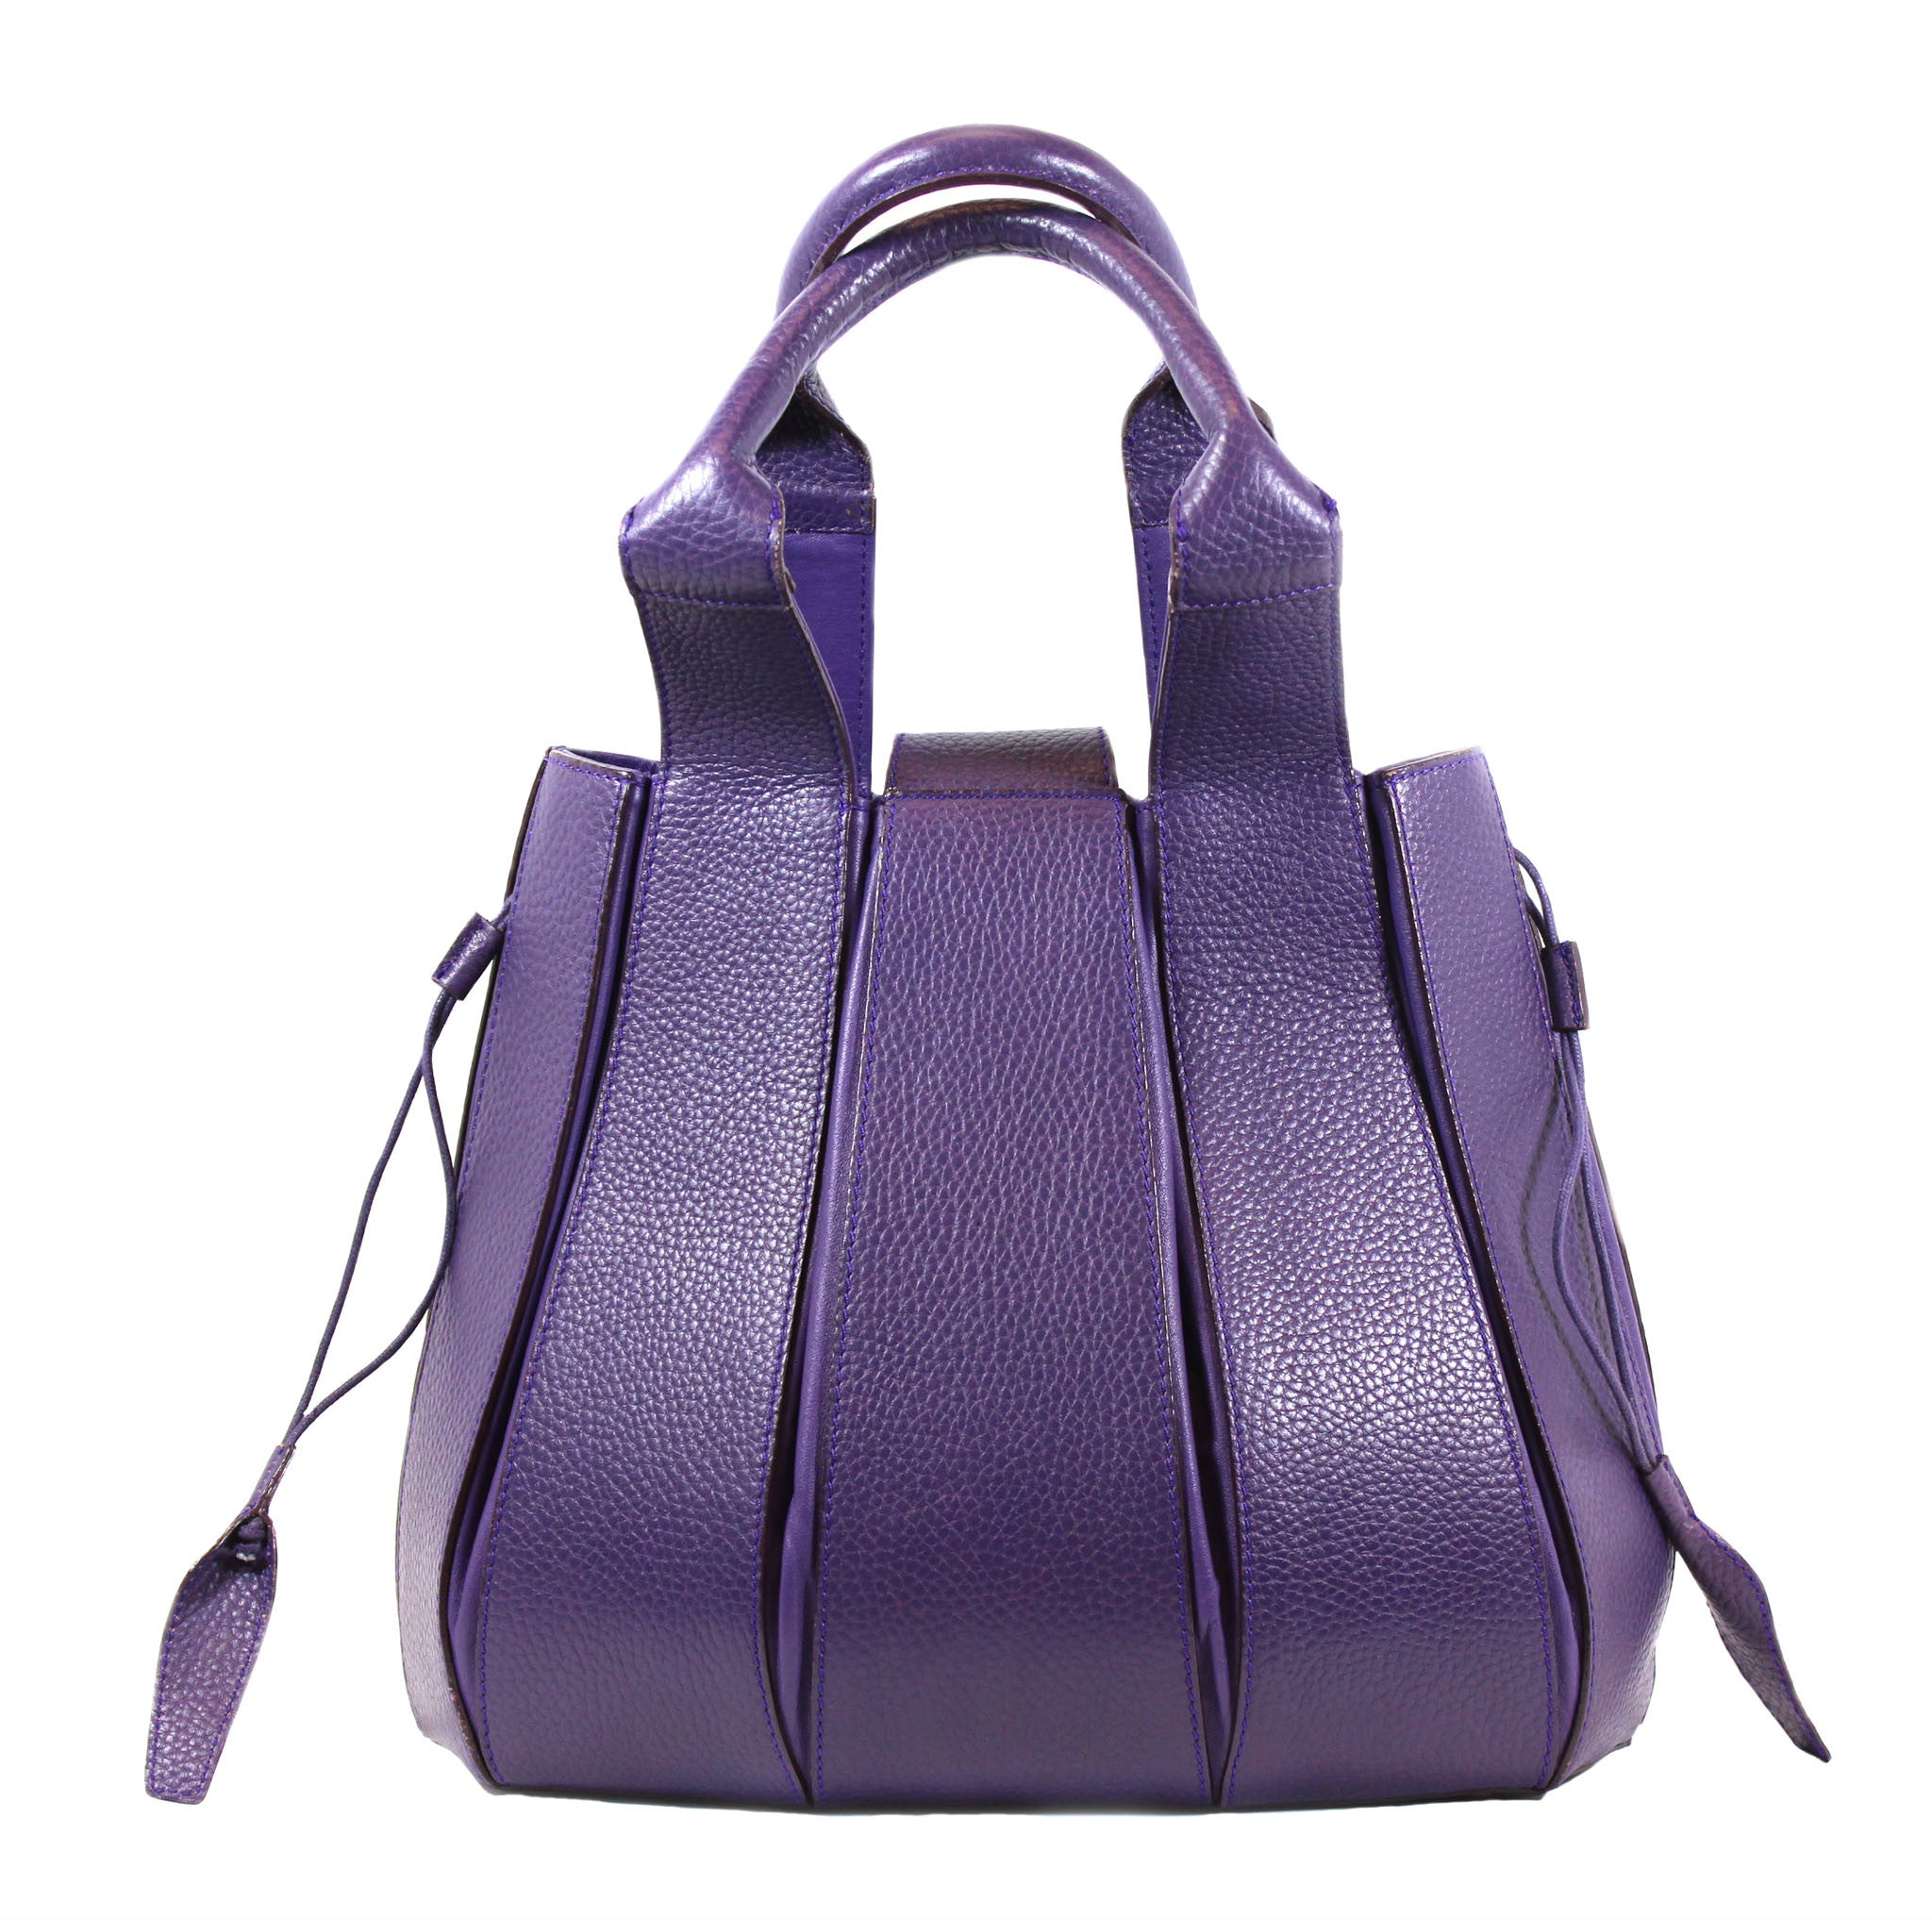 Domenico Vacca 'Julie' Purple Leather Bucket Bag